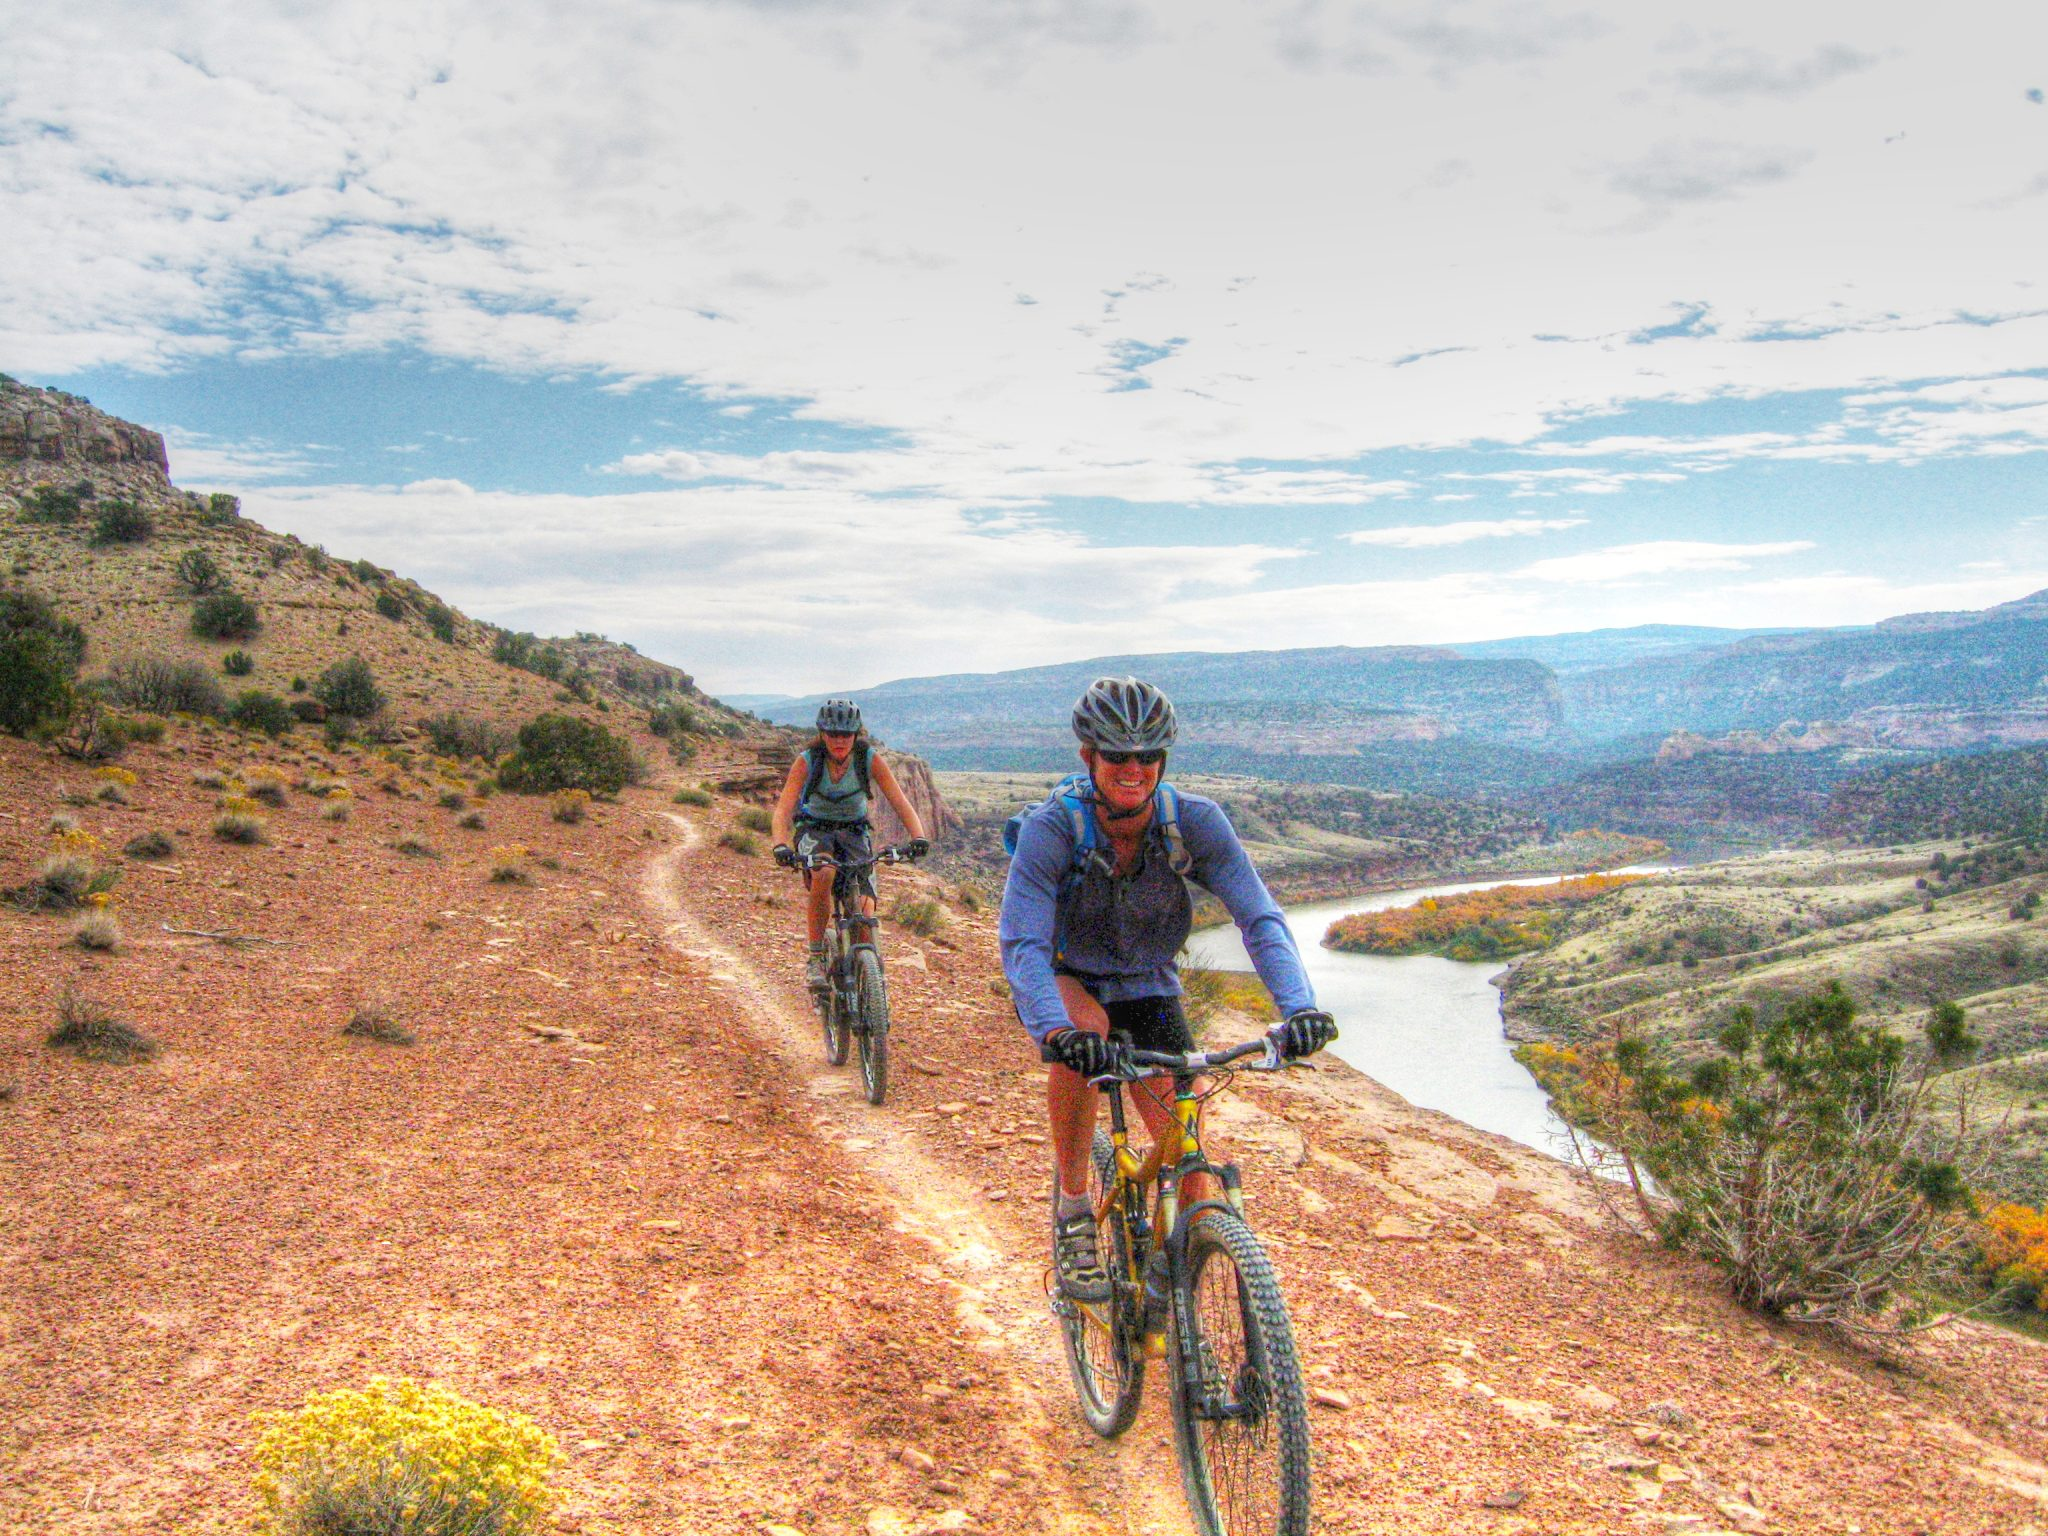 The Western Rim is one of the iconic sections of the Kokopelli Trail with great intermediate singletrack